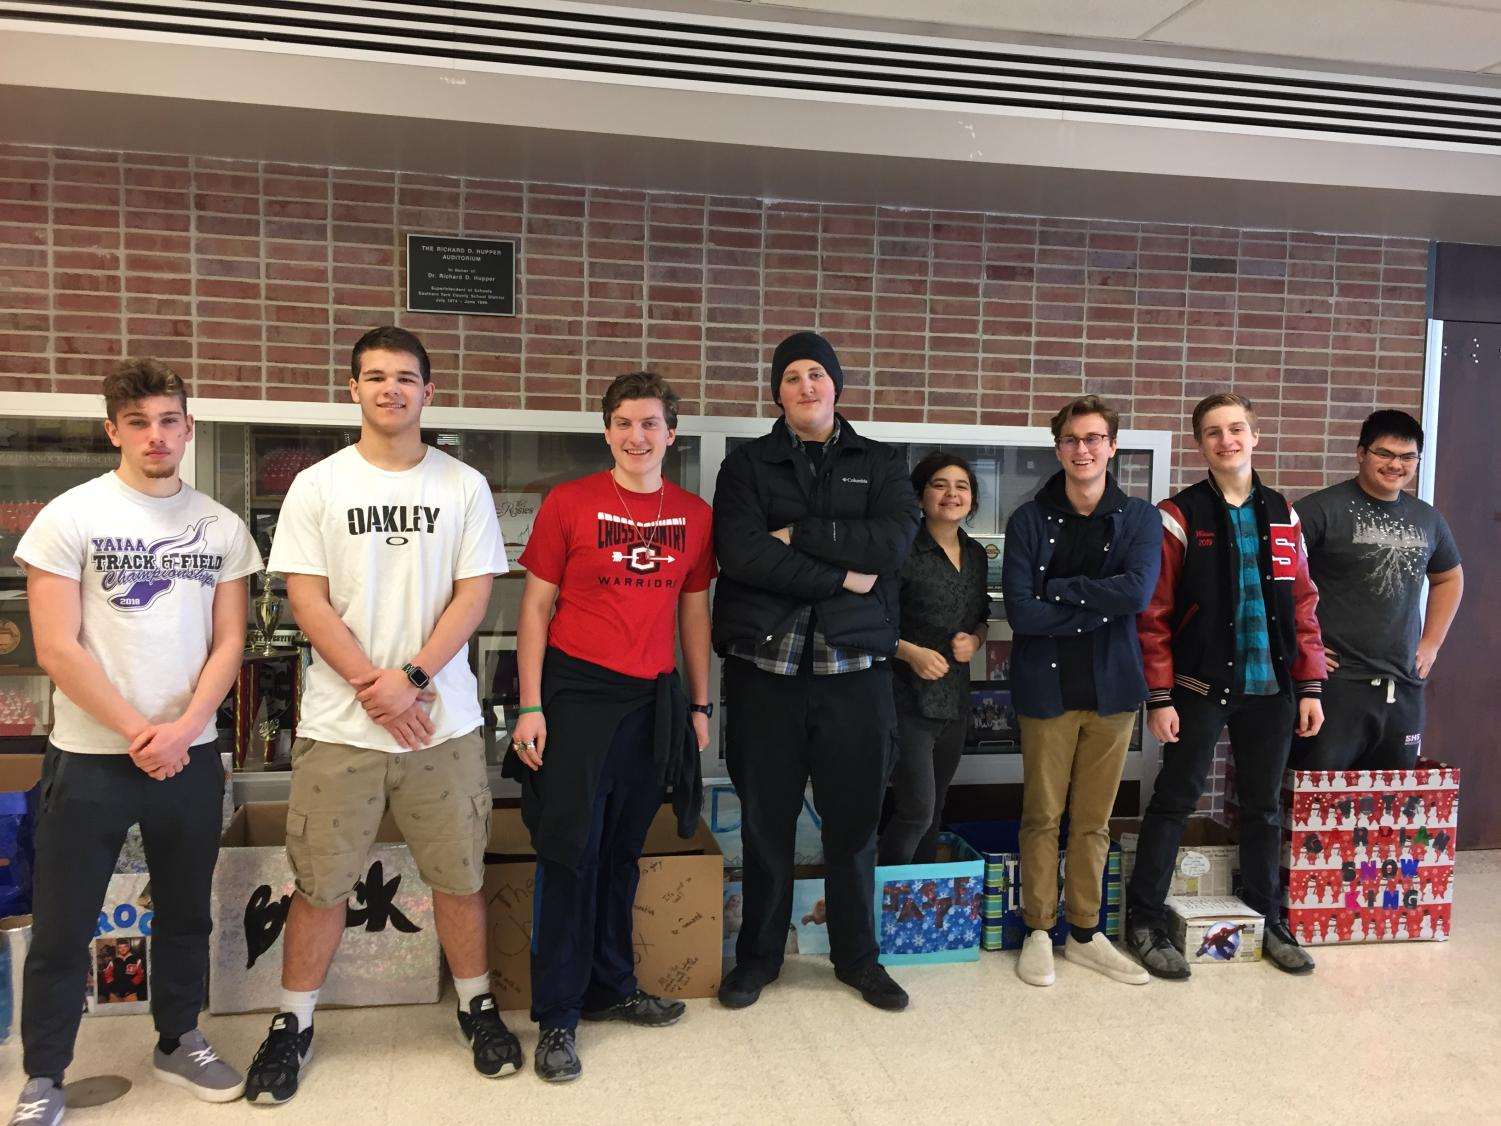 There are twelve candidates for Snow King - six juniors and six seniors. From left to right: Cody McCredie, Brock Hofler, Christian Collins, Dan Poole, Jasper Rowe, Trevor Leuba, Shane Watson and Garrian Phanthy. Not pictured: Michael Boampong, Connor Kernan, Henry Rohlfs and Nolan Holloway. Photo by Anna Feild